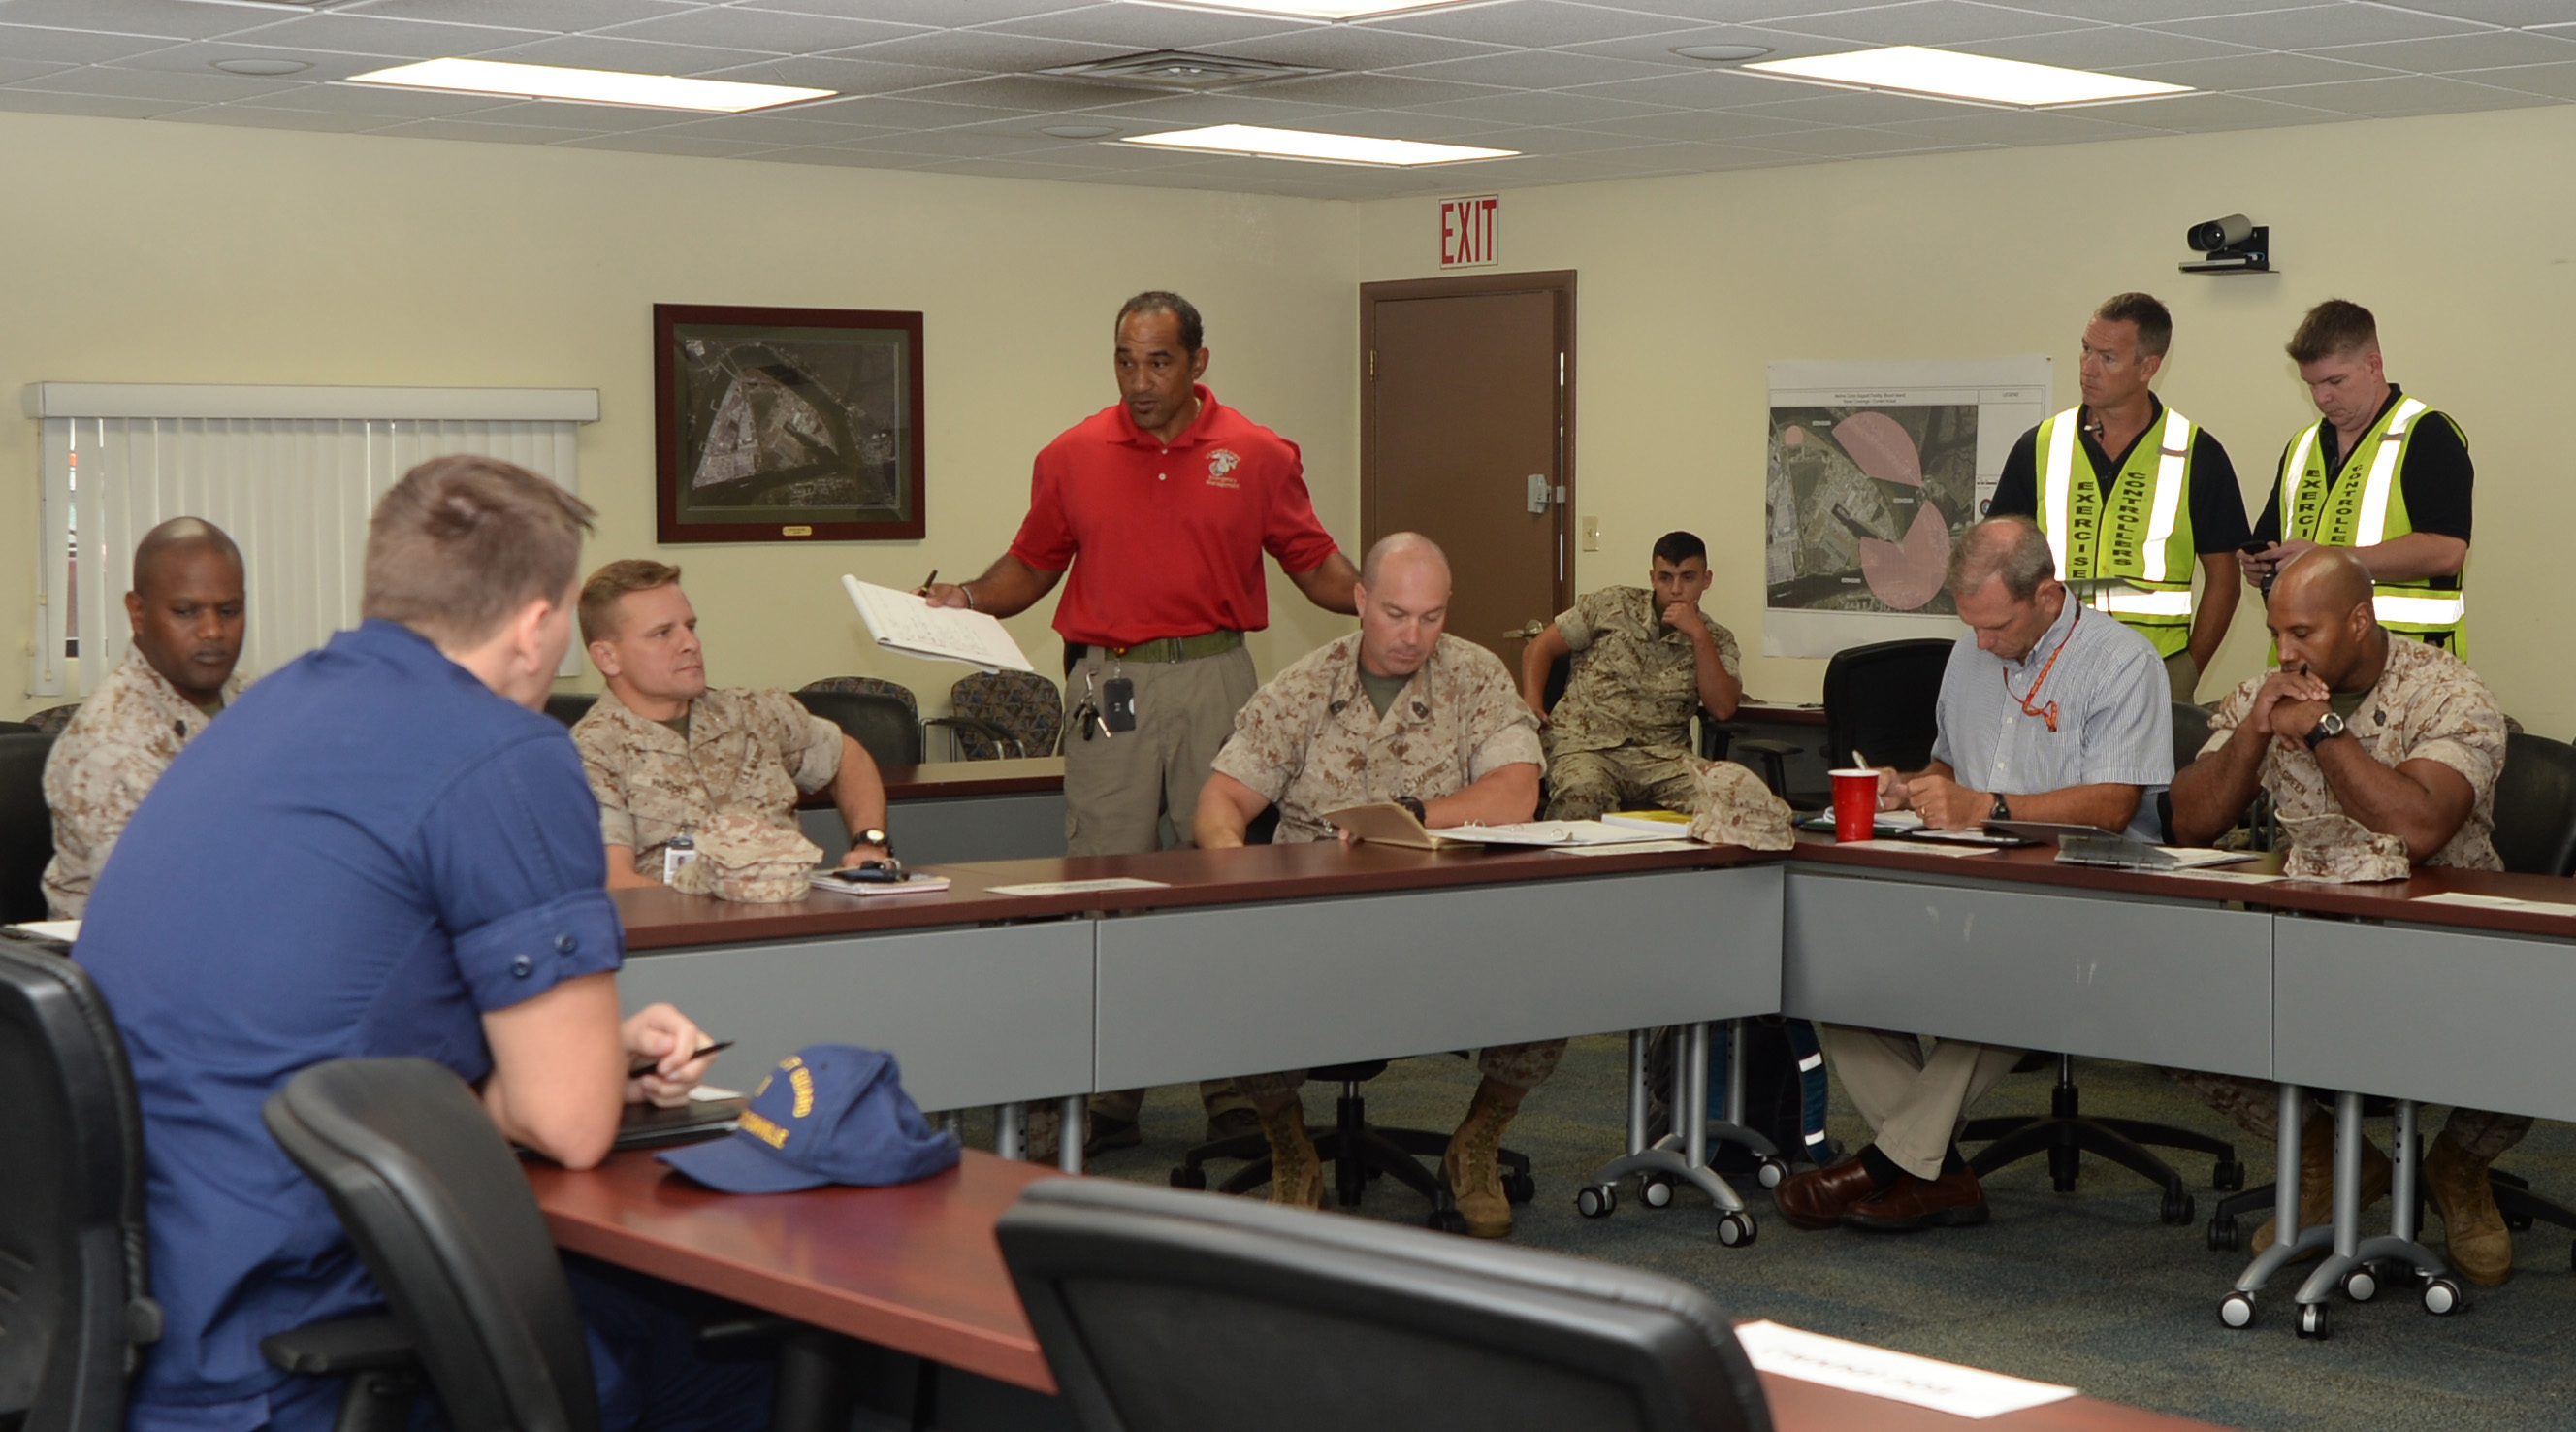 Blount Island Officials Eoc Team Achieve Thumbs Up From Exercise Evaluators